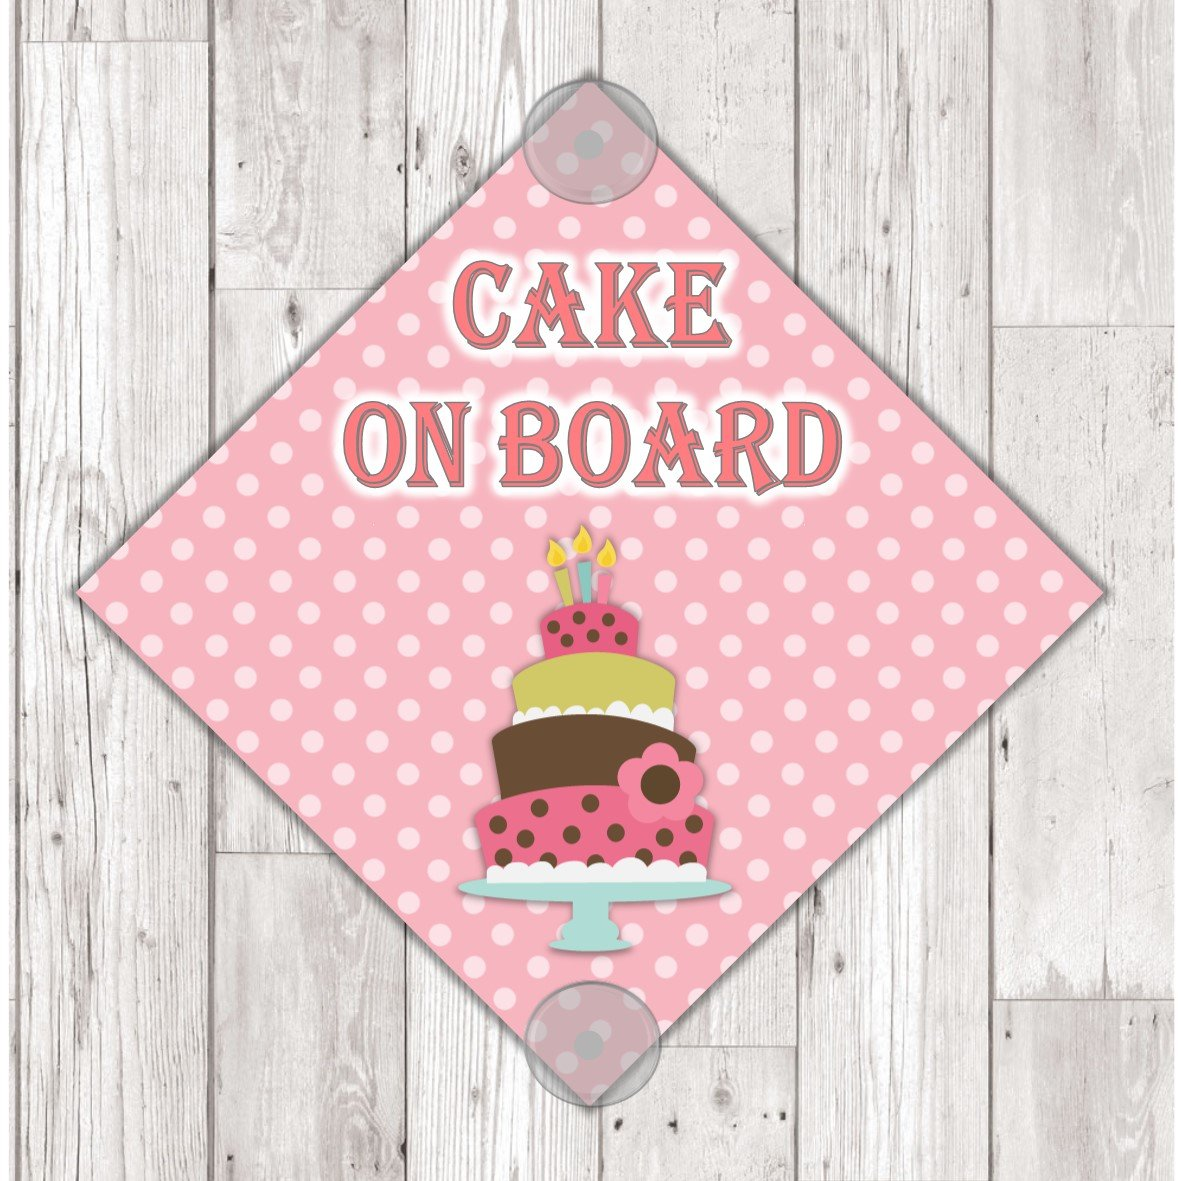 WS08 Cake On Board personalised Car Sign Sticker with suction cups own design logo added